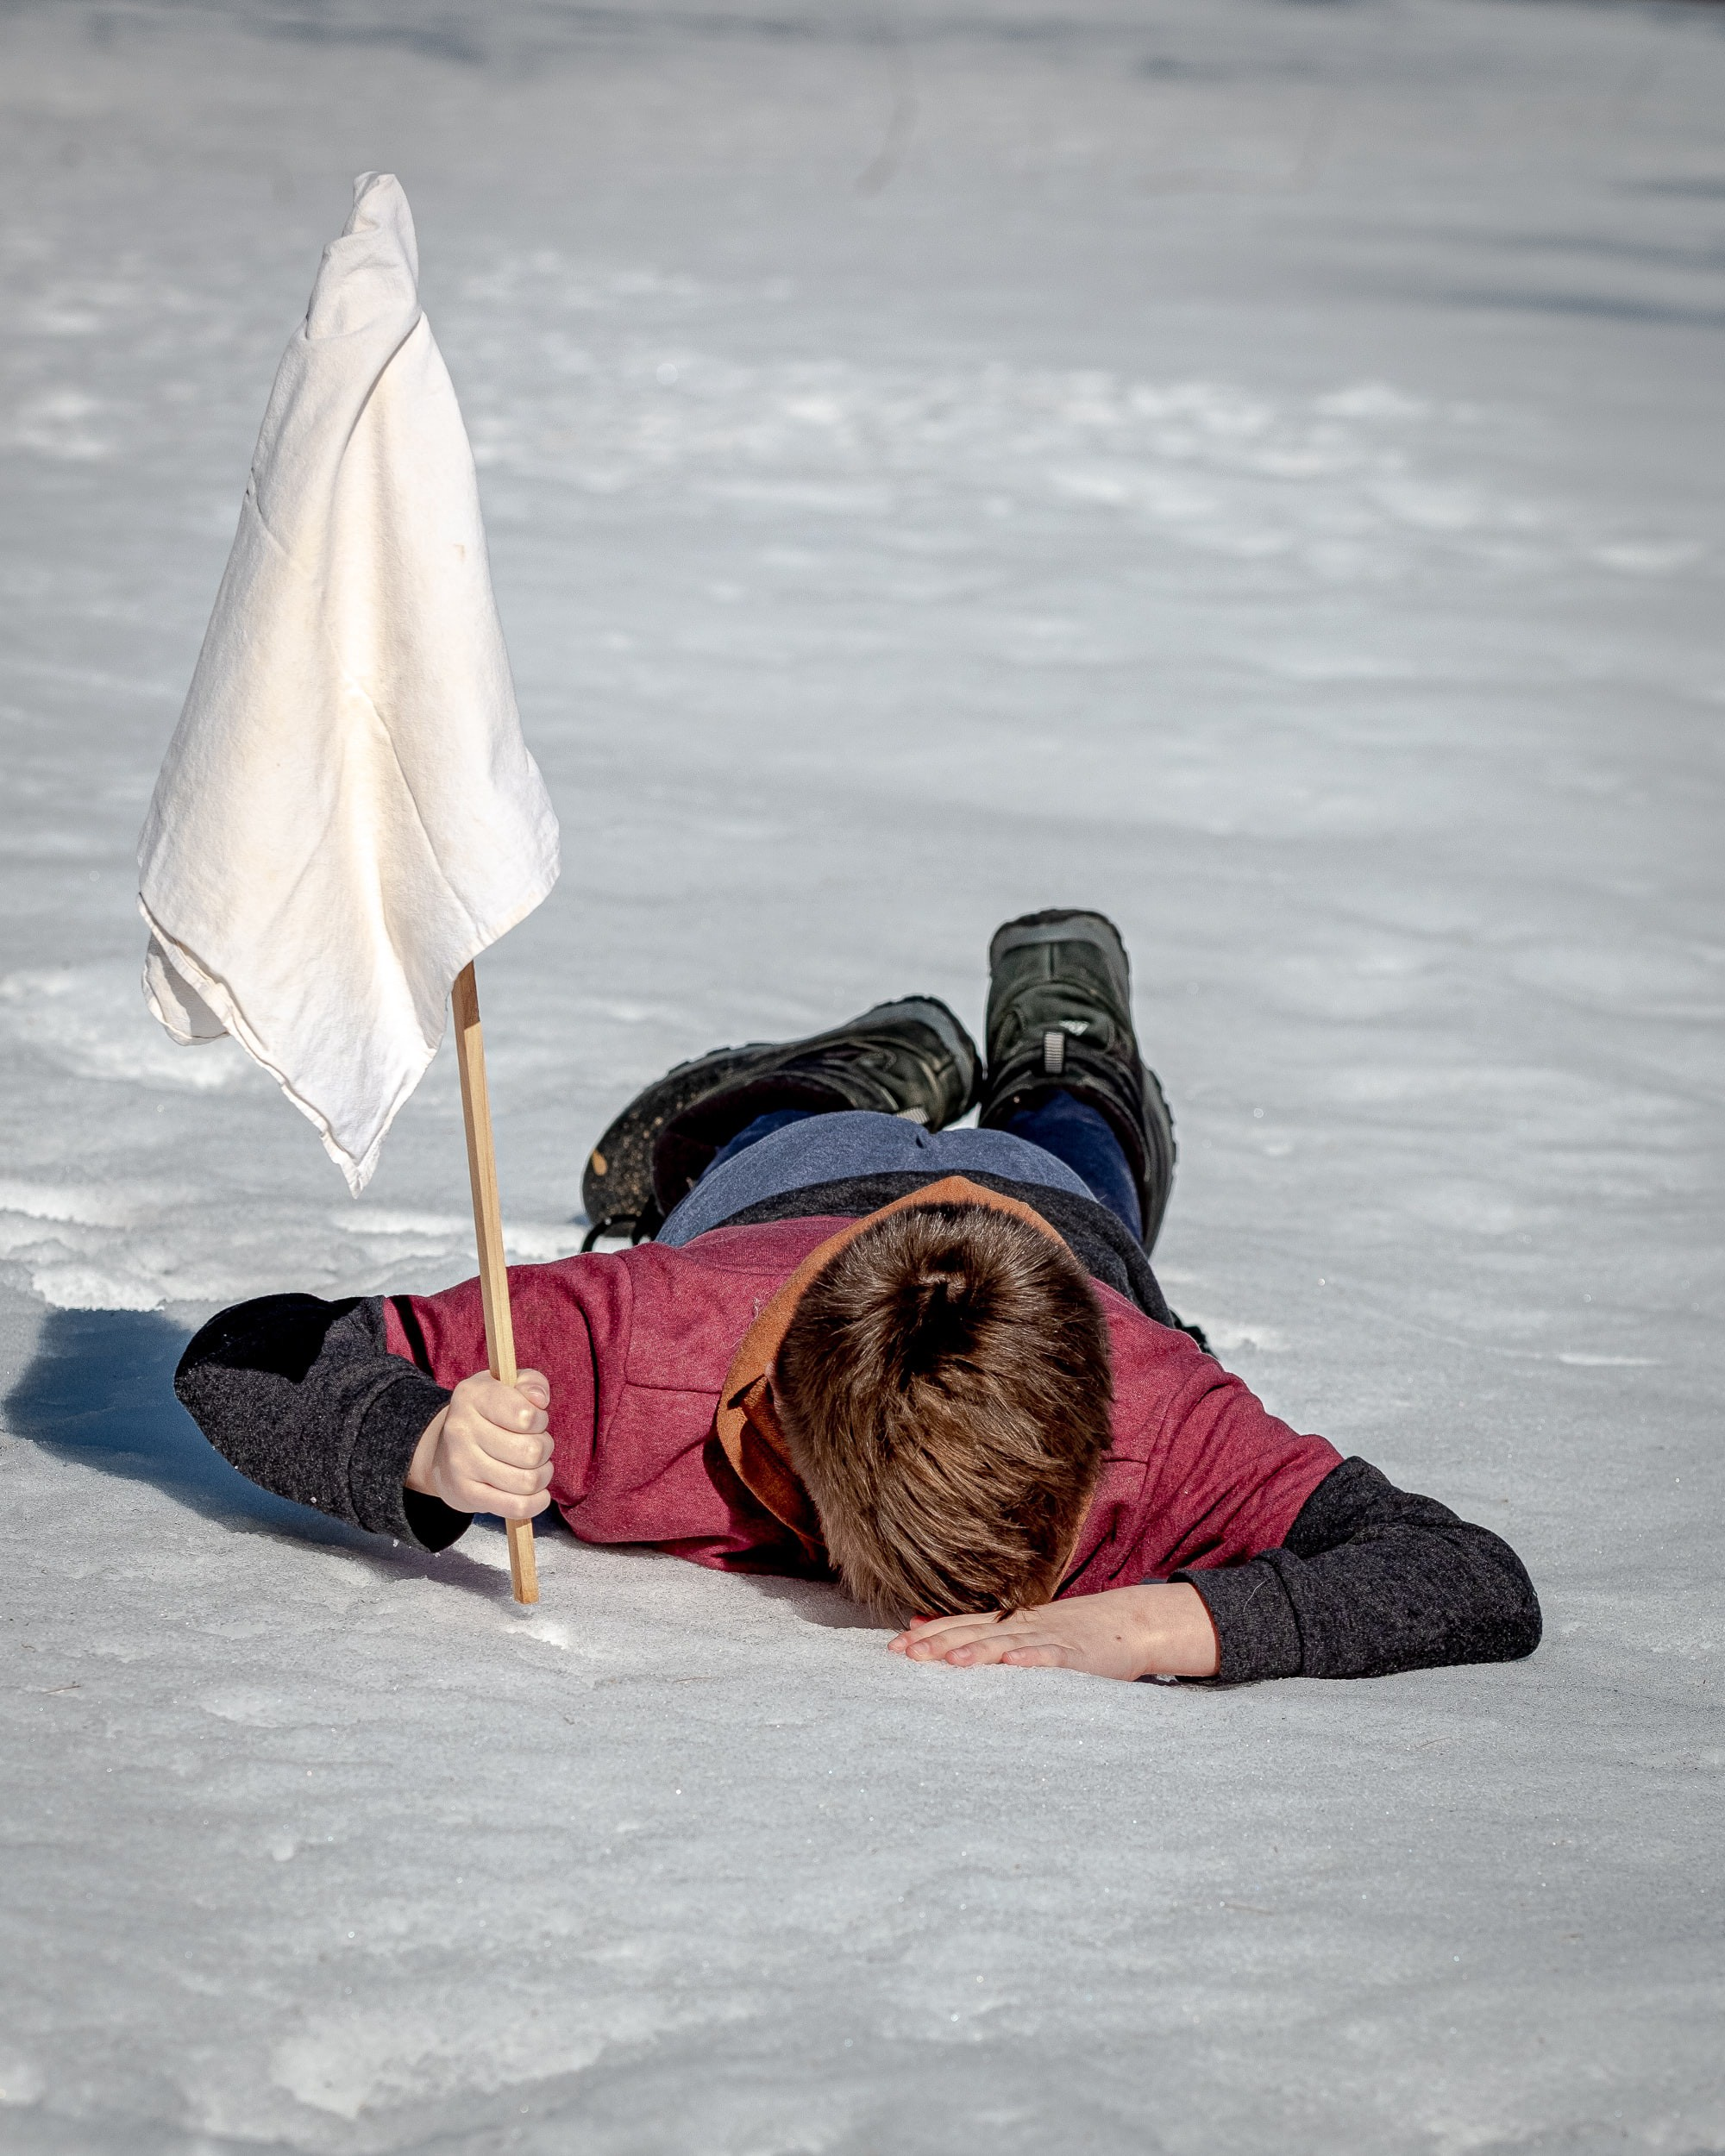 Person lying prone on ice with a white flag in their hand